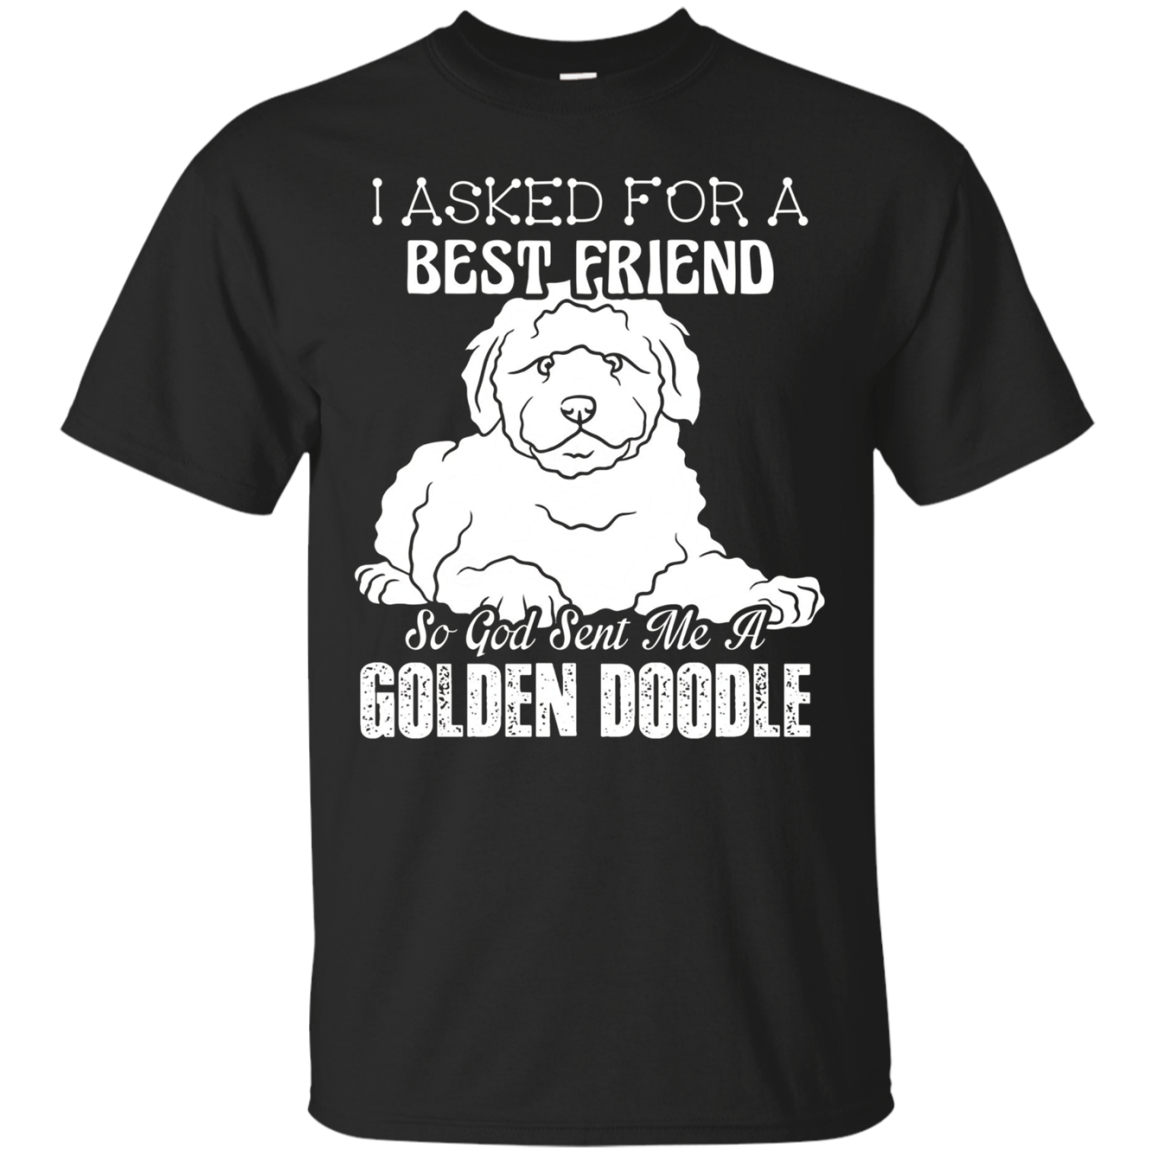 Goldendoodle Shirts - Best Friend Goldendoodle Tshirts